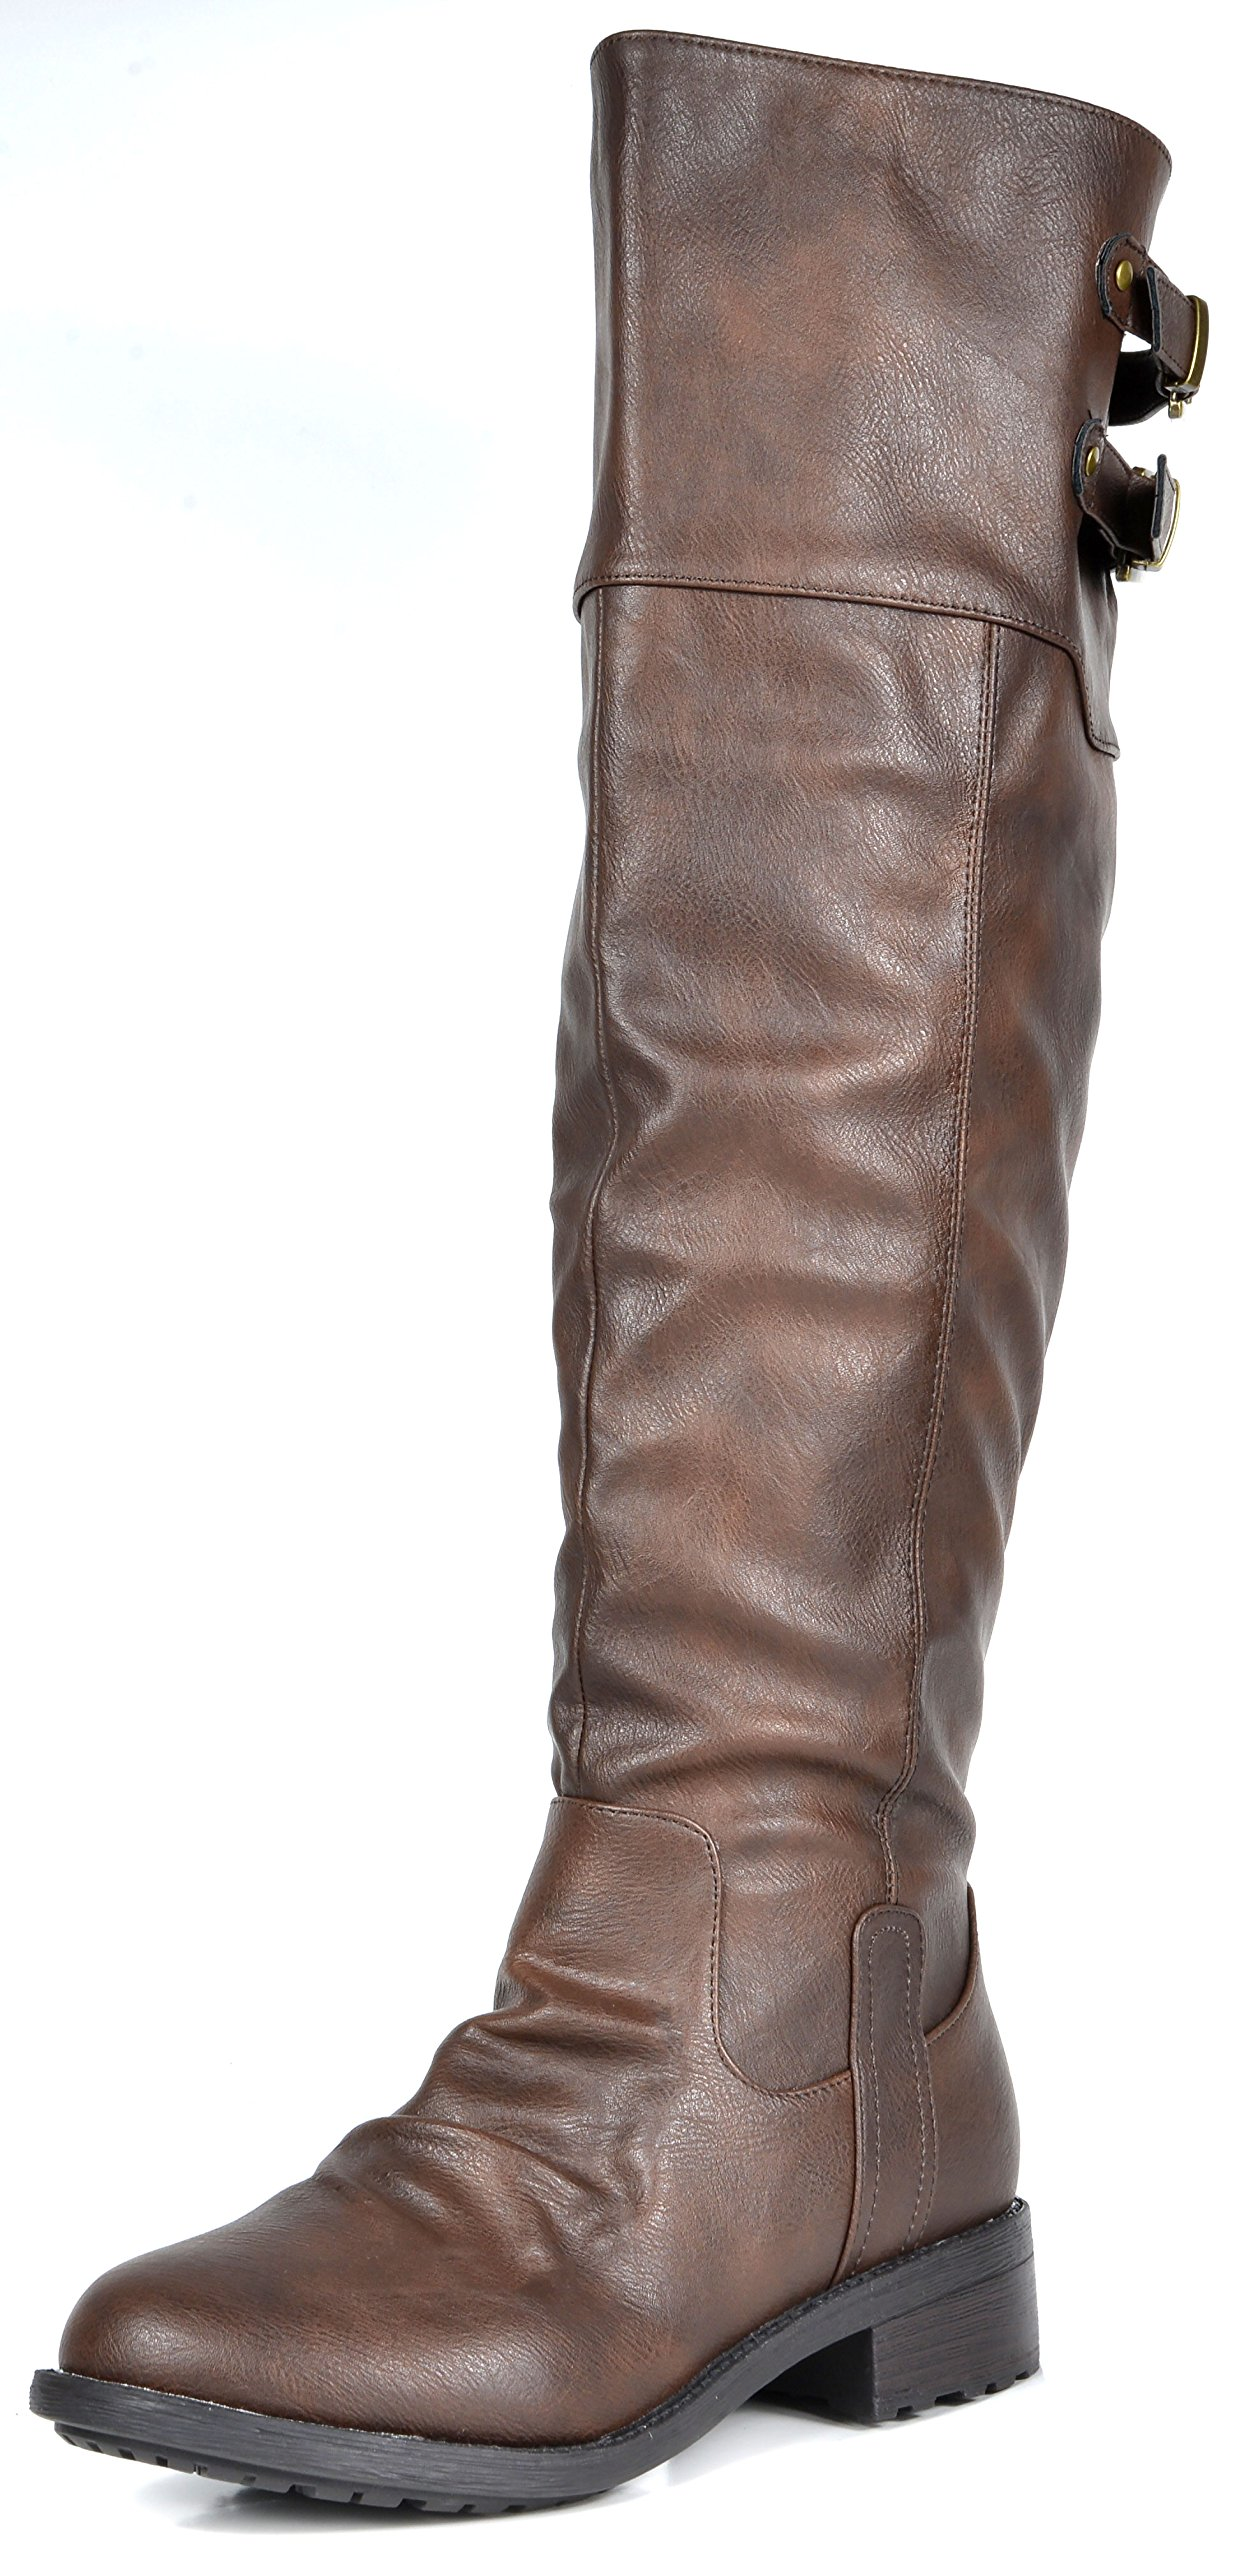 DREAM PAIRS Women's Supra Brown Over The Knee Motorcycle Riding Boots Wide Calf Size 8.5 M US